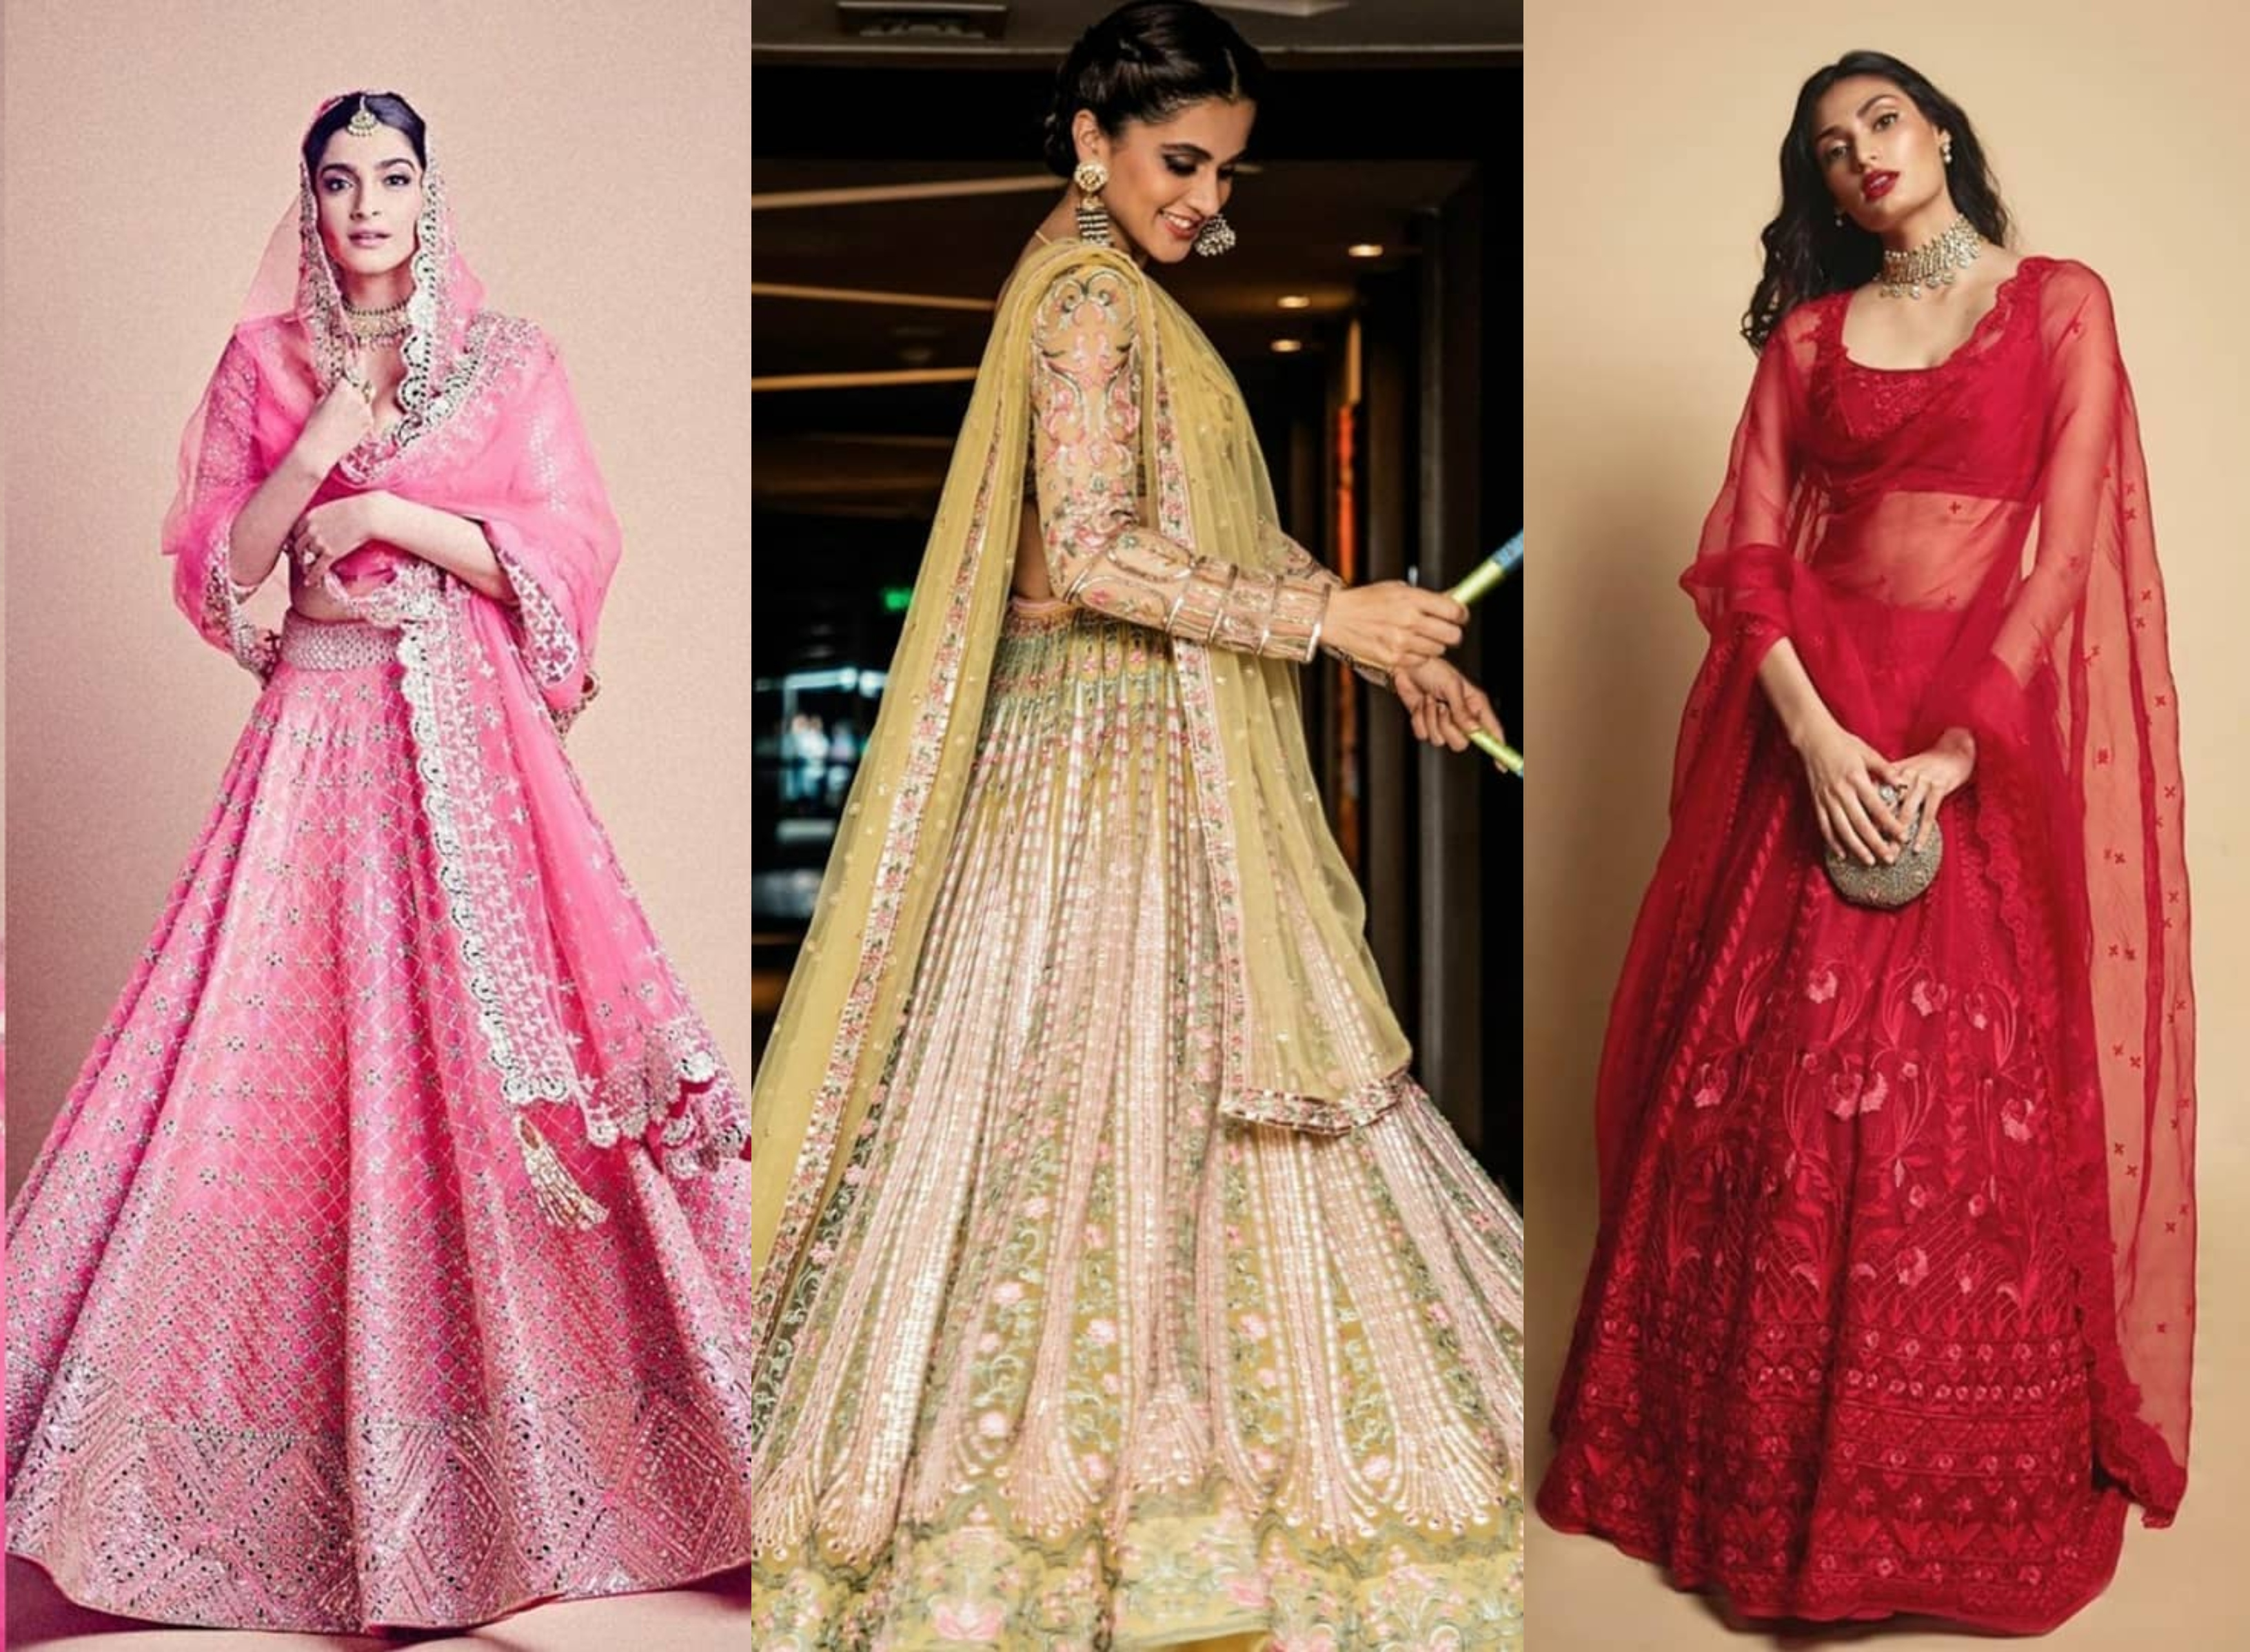 Looking for the perfect Karva Chauth outfit? Get inspired by THESE celebrity looks